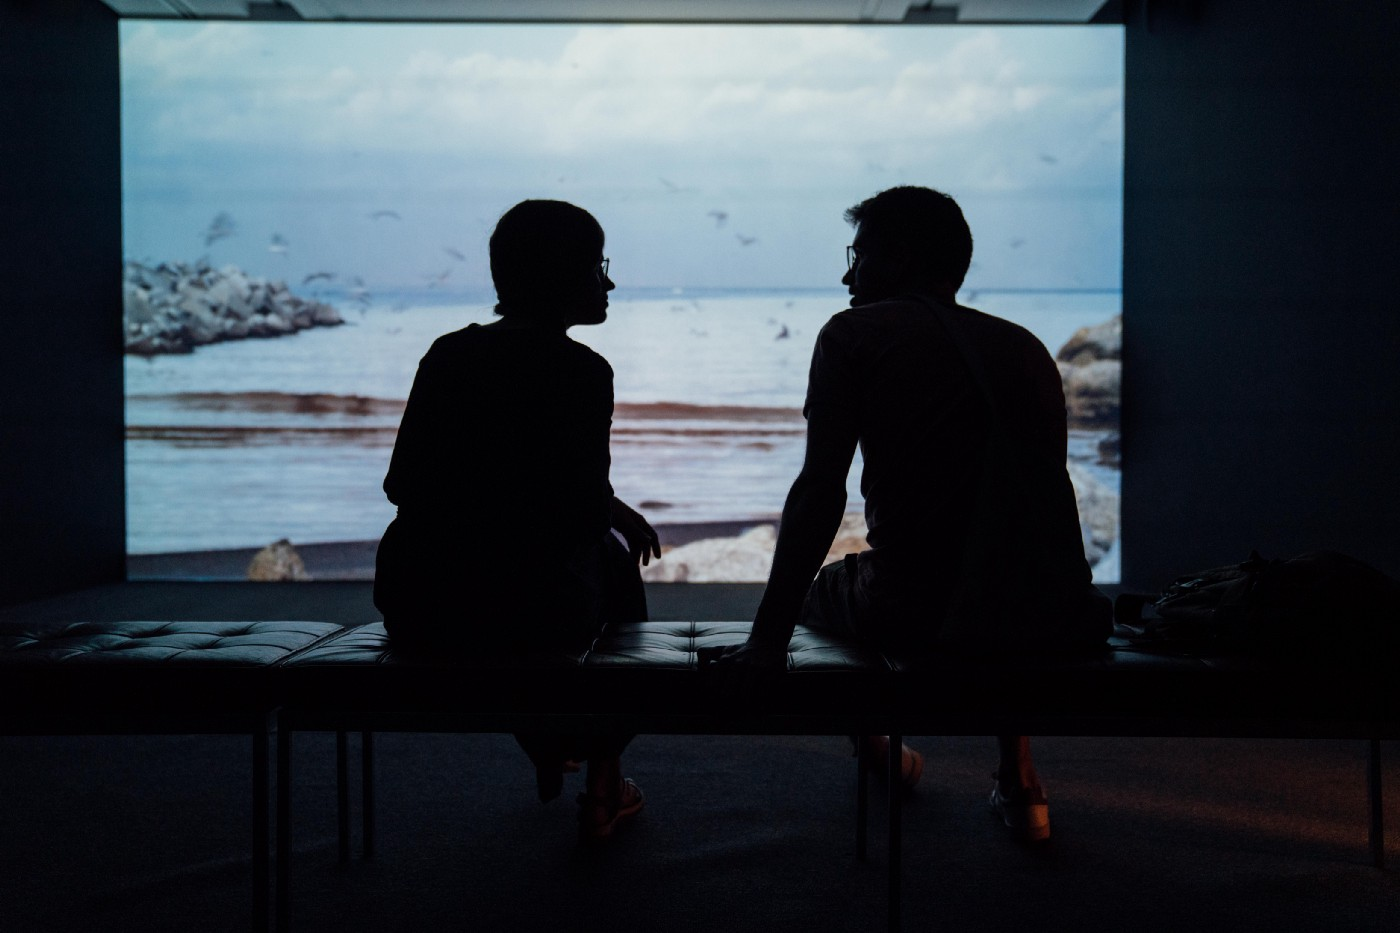 Two people sit indoors on a bench in front of a large window or screen. The people are in silhouette.